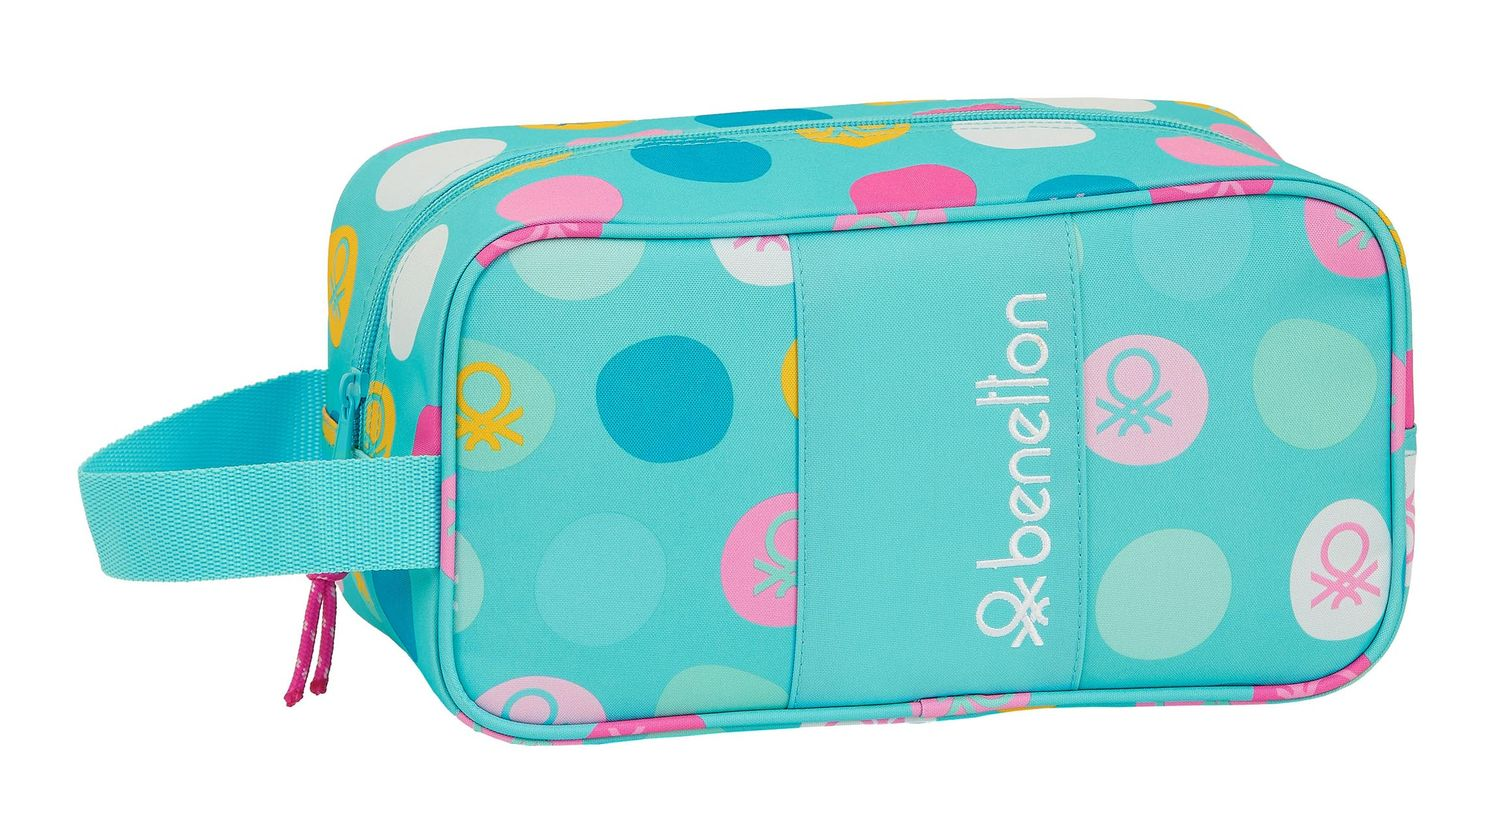 BENETTON Turquoise POLKA DOTS Shoe Bag 29 cm – image 1